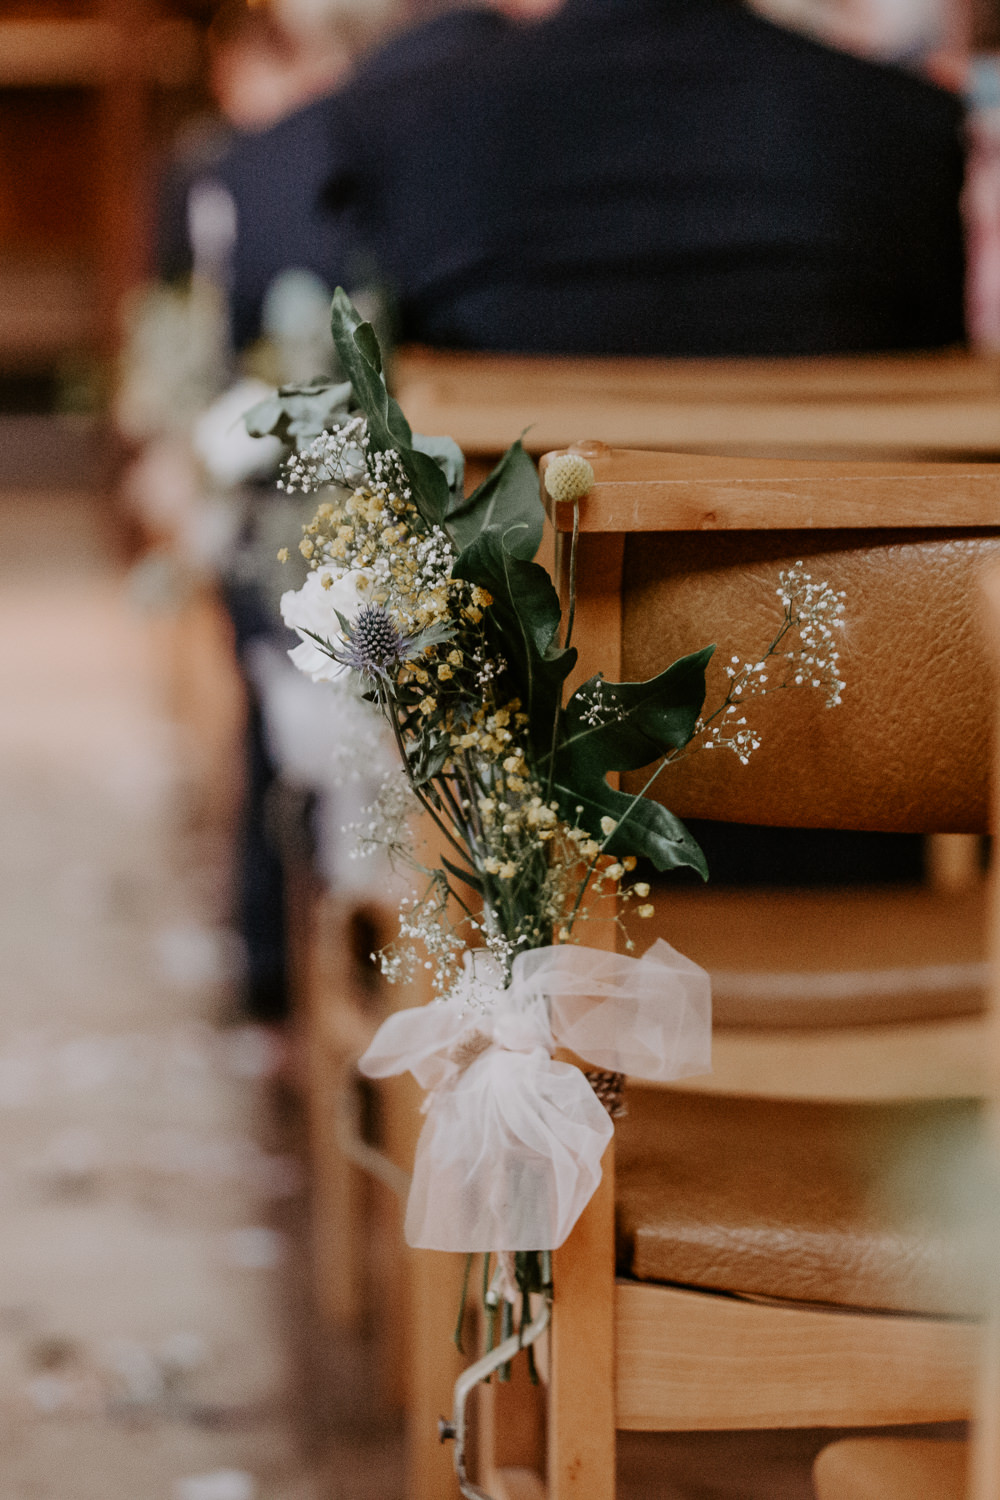 Sea Holly Thistle Greenery Pew Ends Aisle Flowers Willingale Village Hall Wedding Photographer Liam Gillan